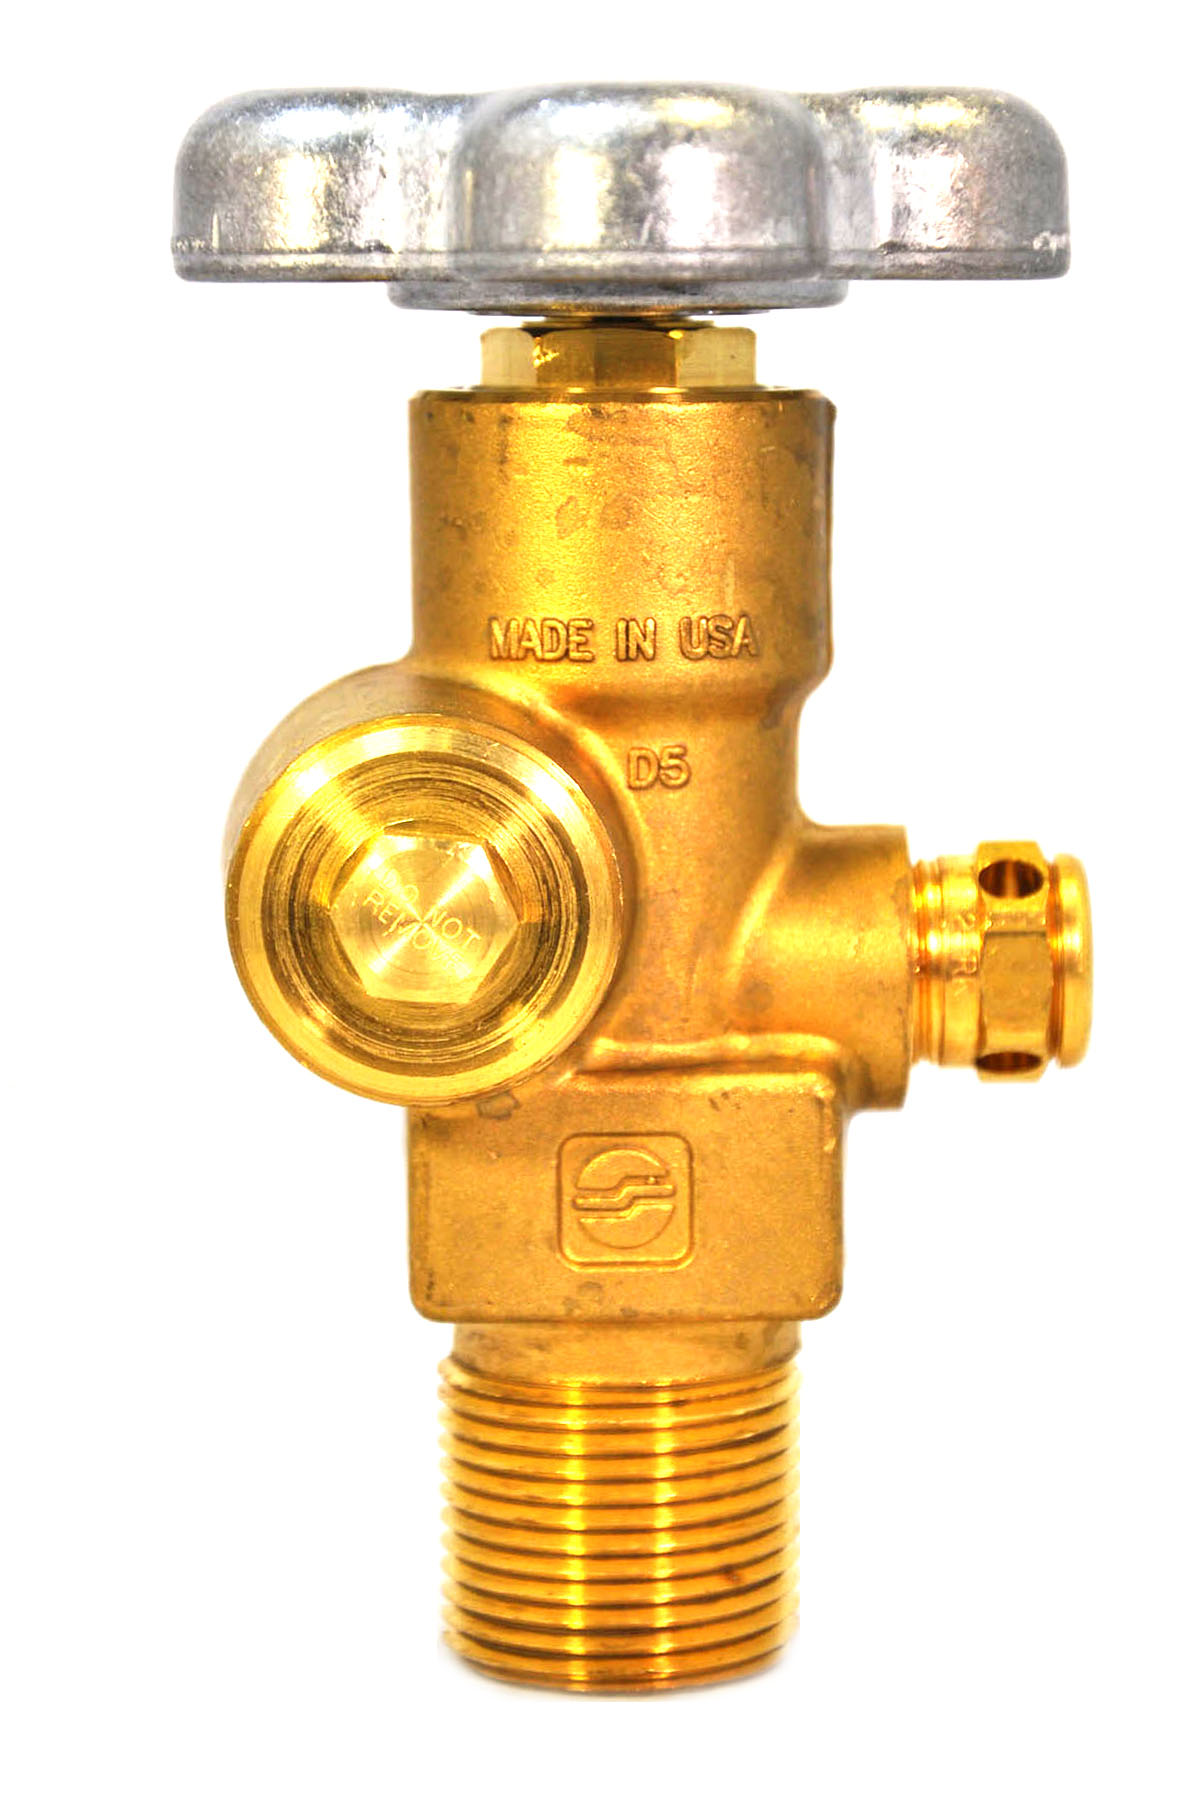 GSRPV Residual Pressure Valves